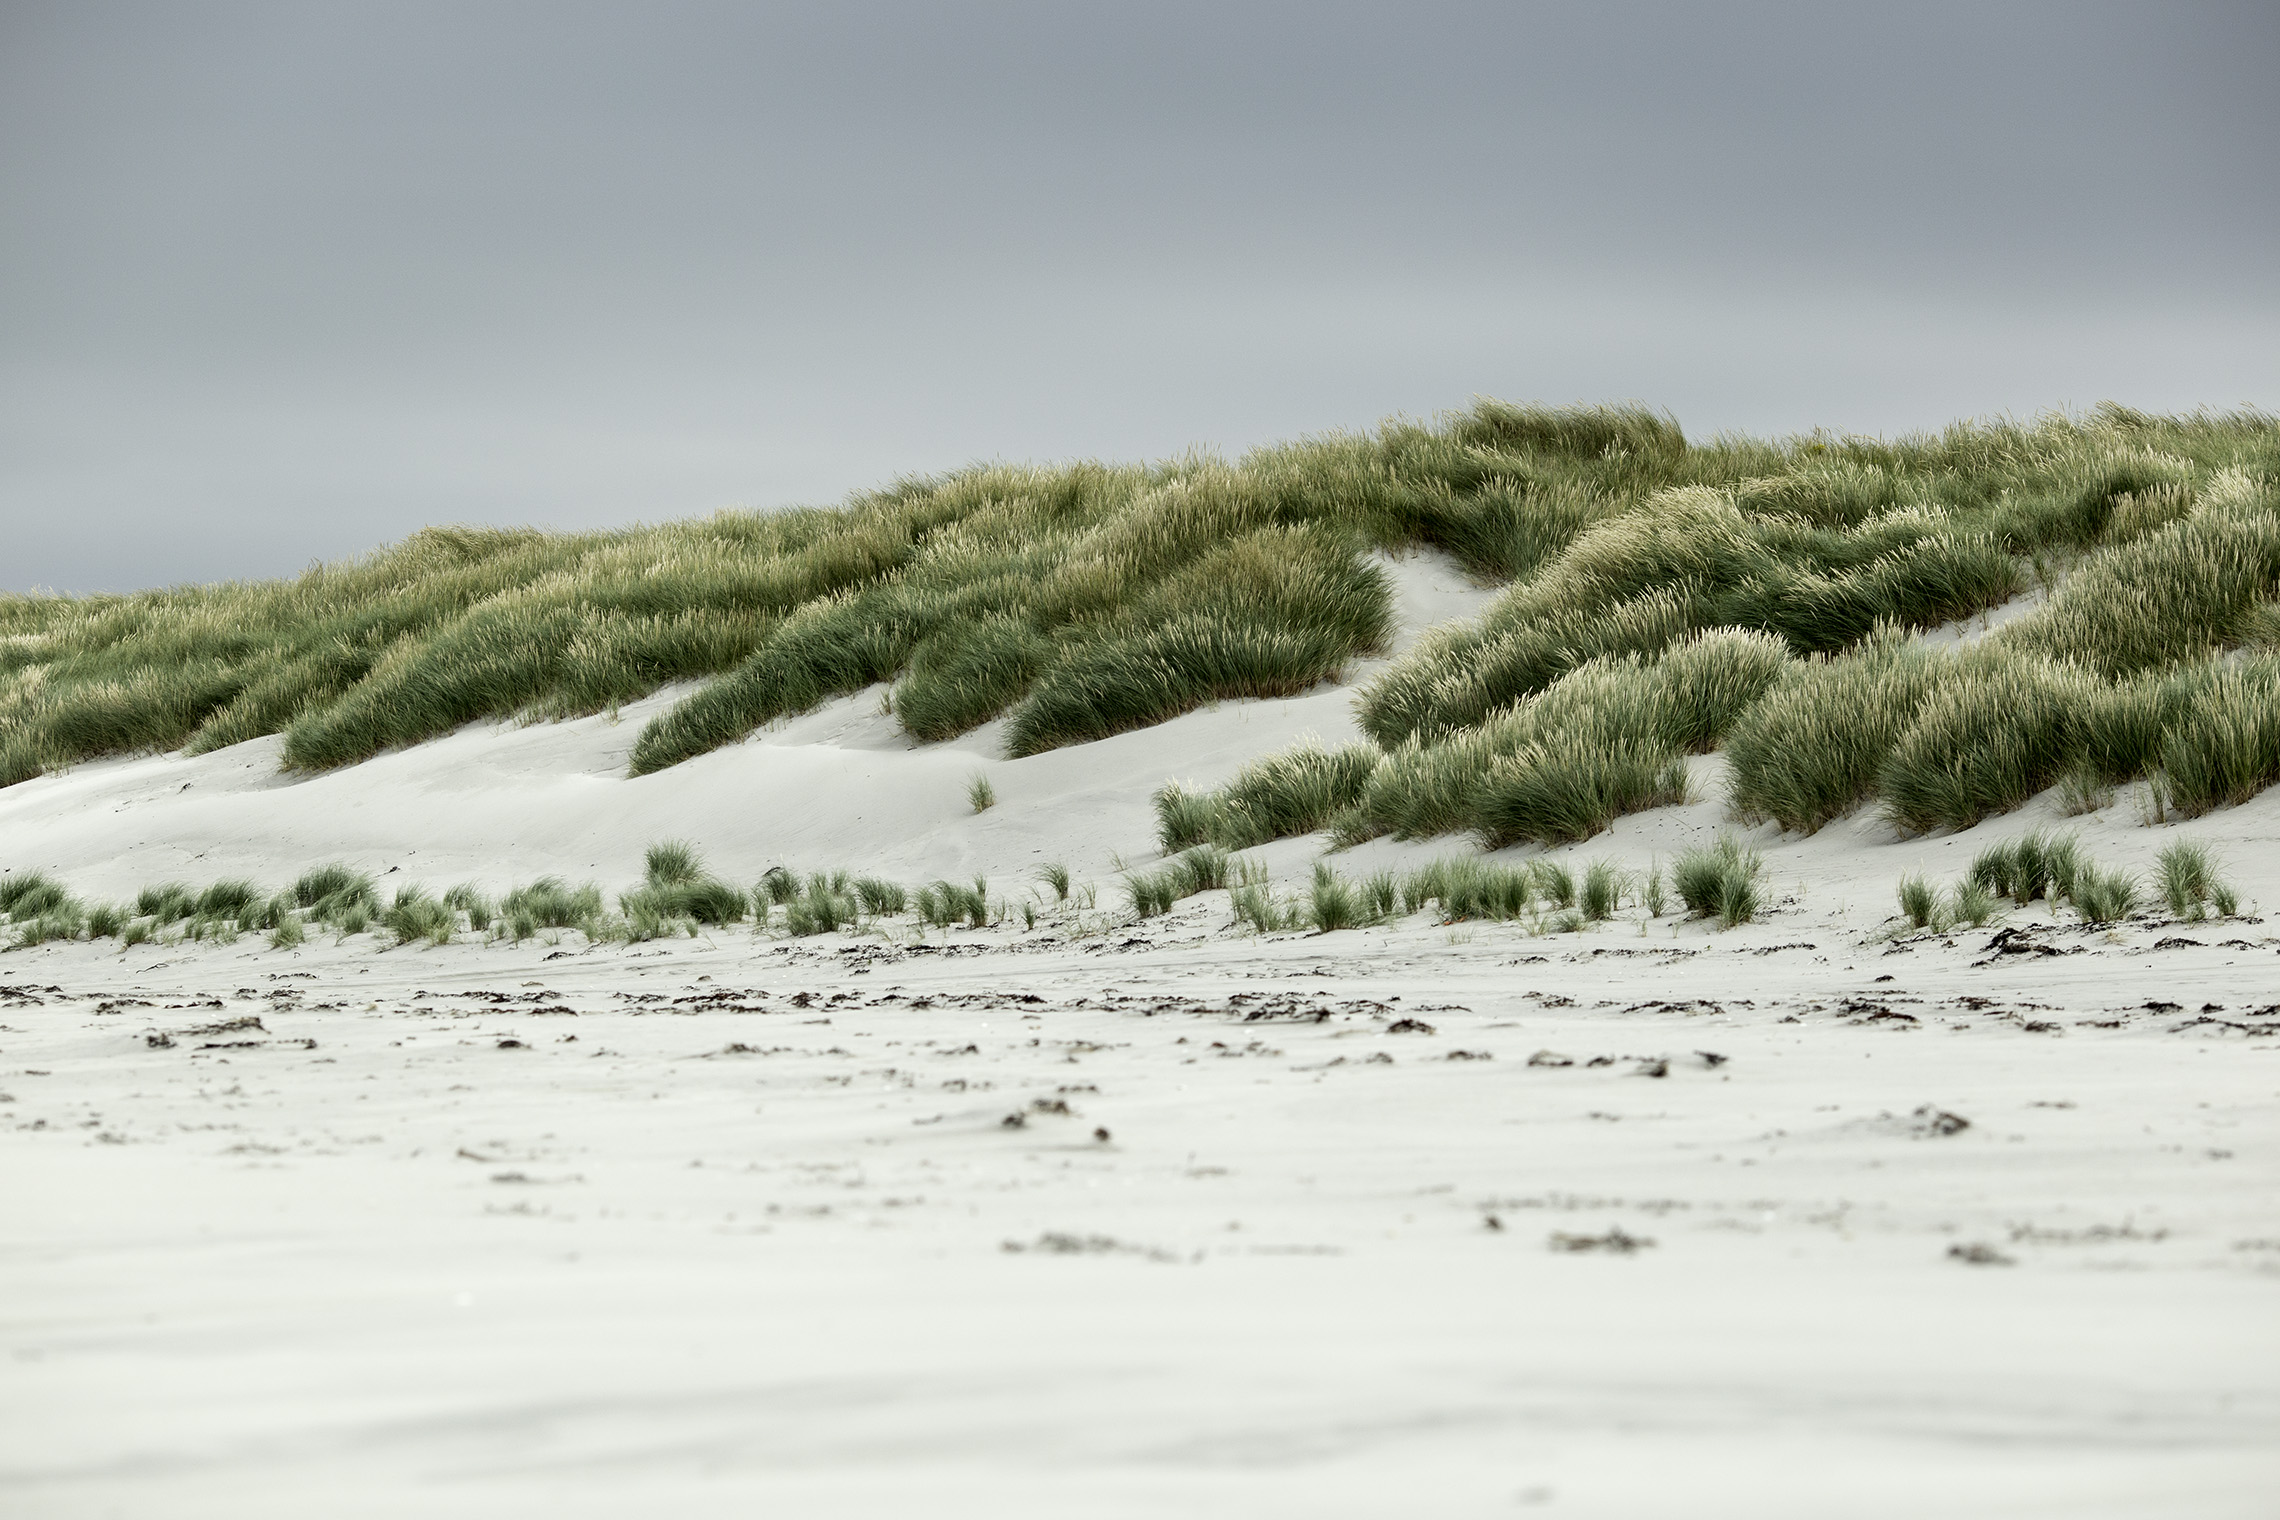 sand dunes and beach in scotland